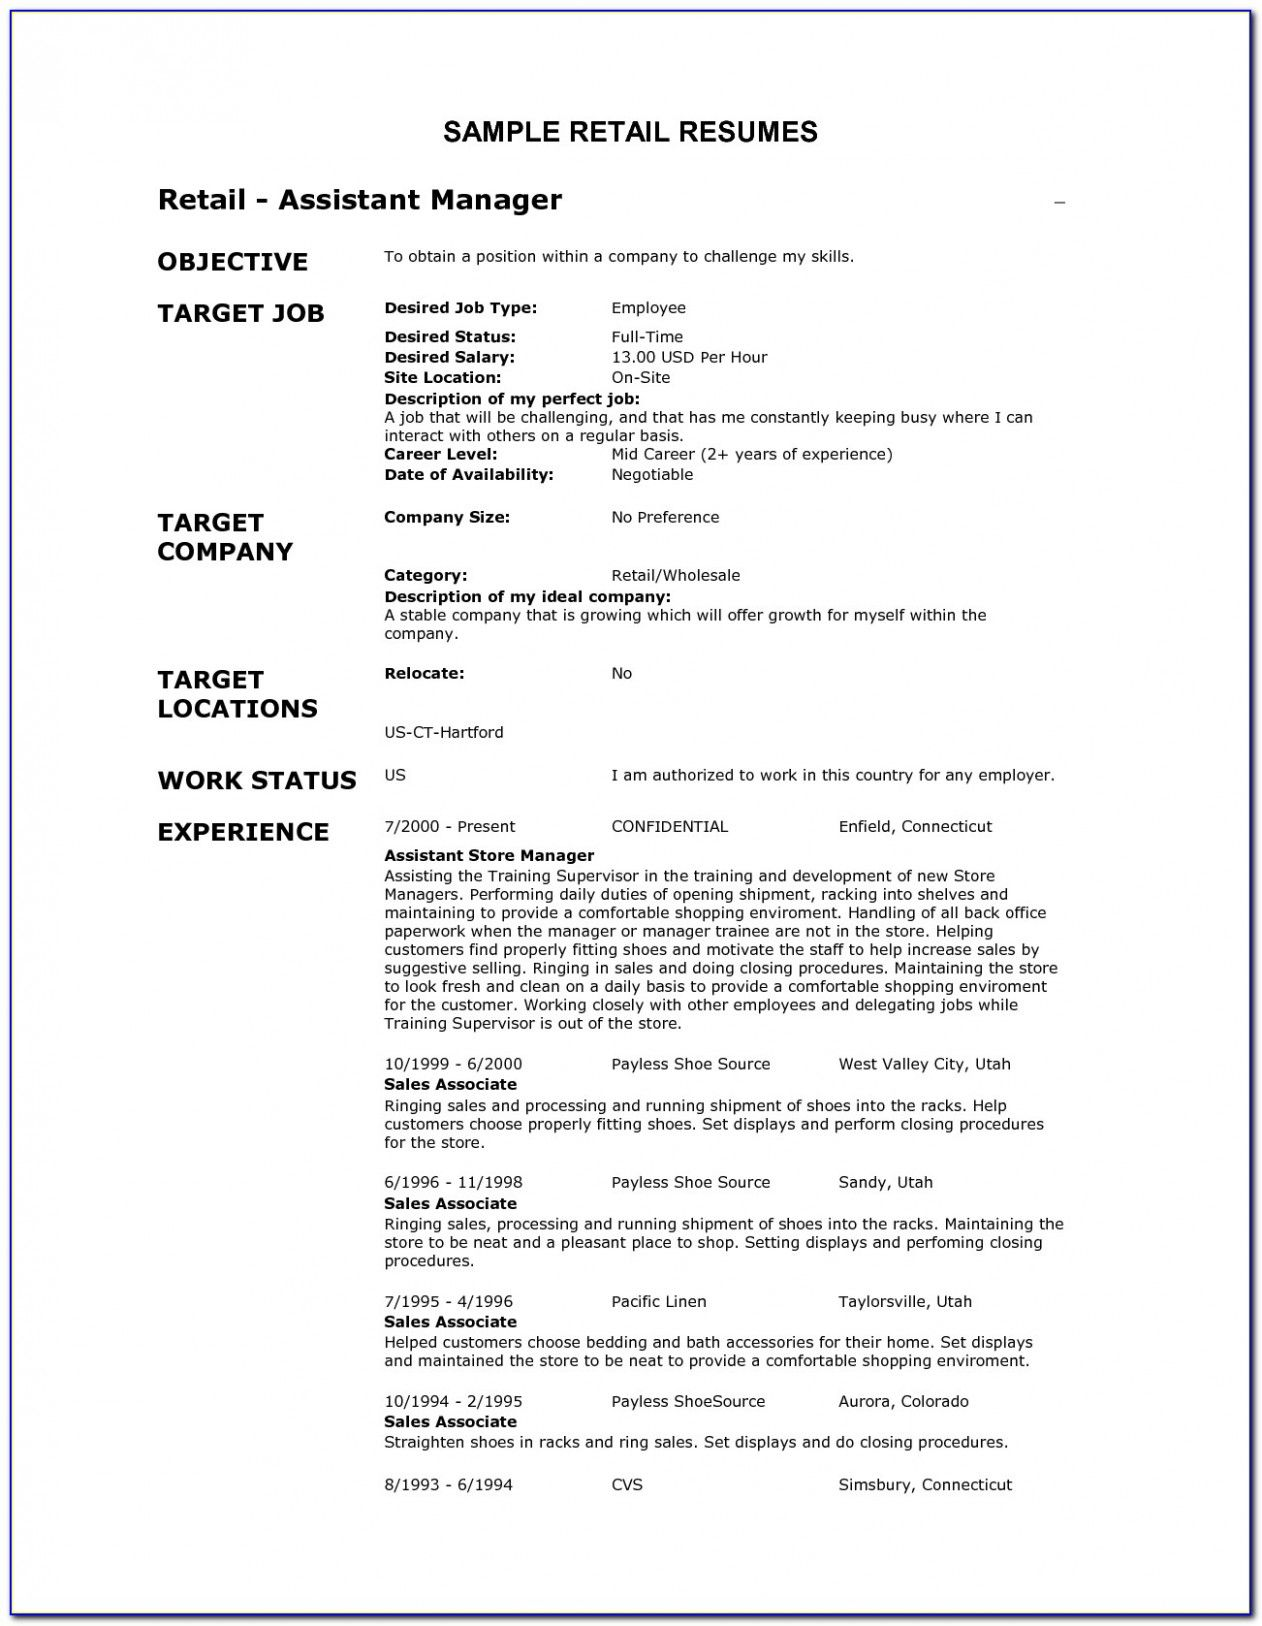 Retail Resume Objective In 2021 Resume Objective Examples Resume Examples Resume Objective